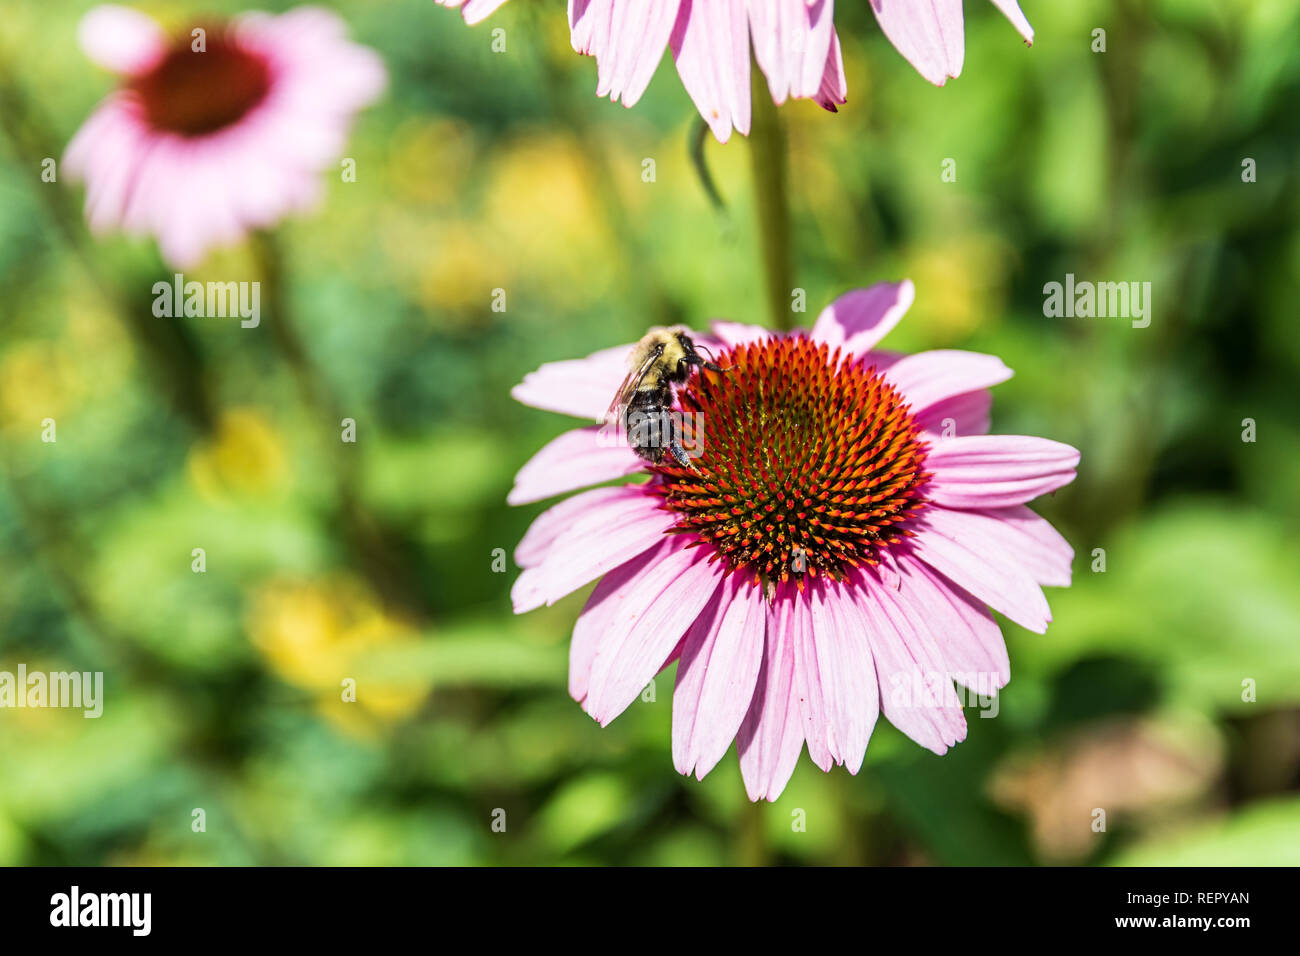 A pink-purple cone flower (Echinacea purpurea) with a bumblebee feeding on it. - Stock Image